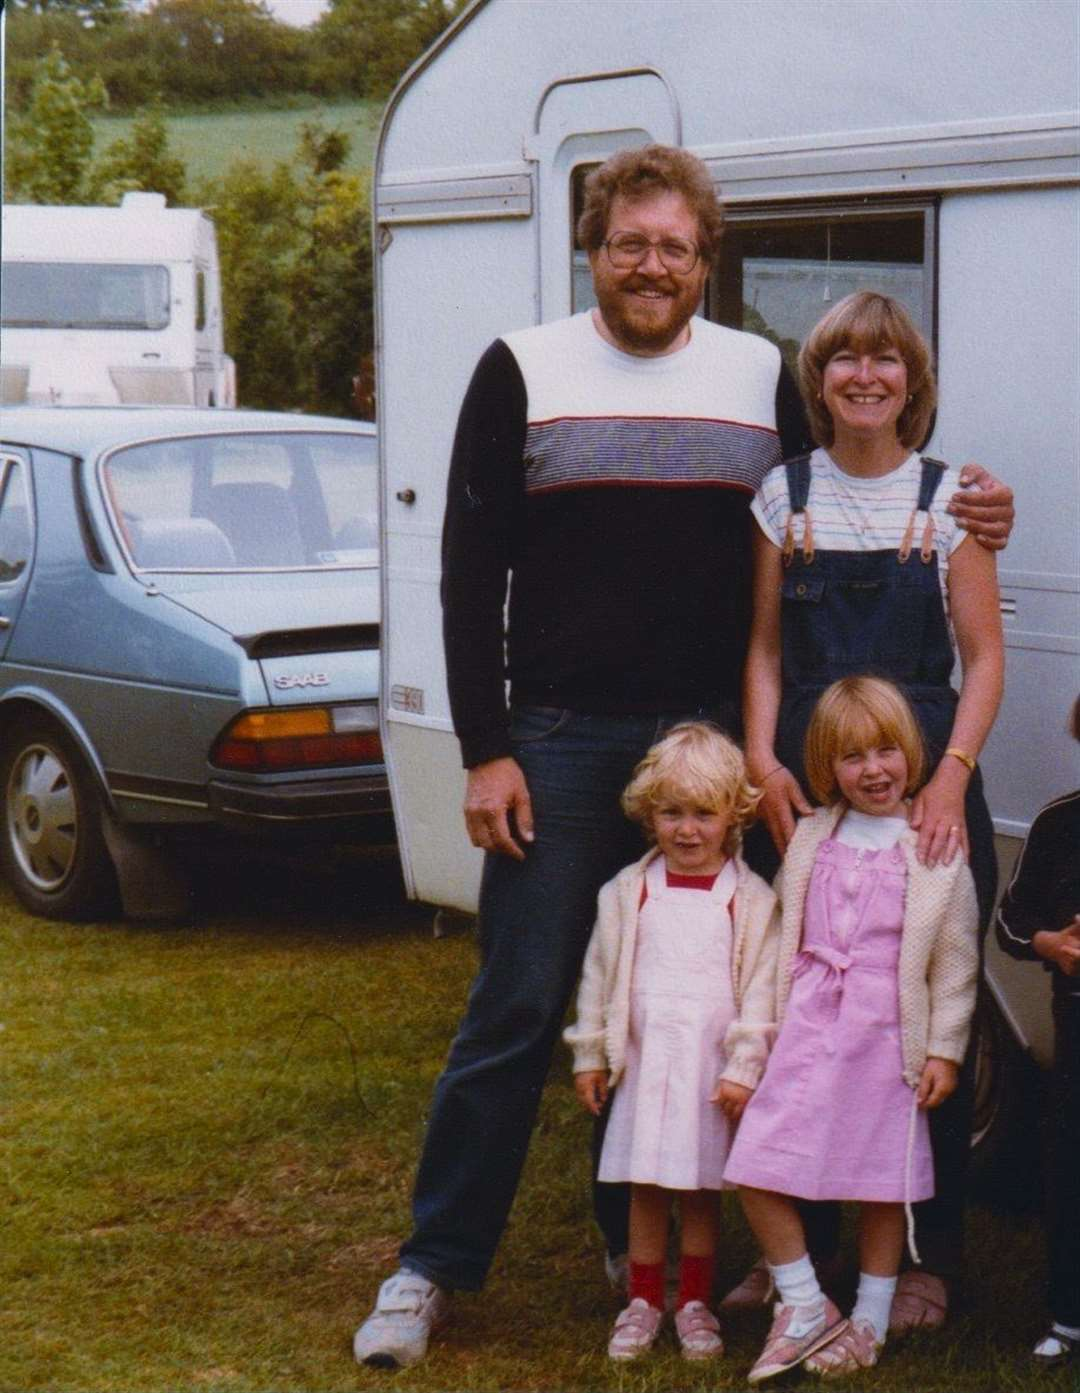 Chas Gill, wife Rosemary and their daughters Victoria, 5, and Lucy, 3, enjoying a family caravanning holiday in 1984 (33114740)